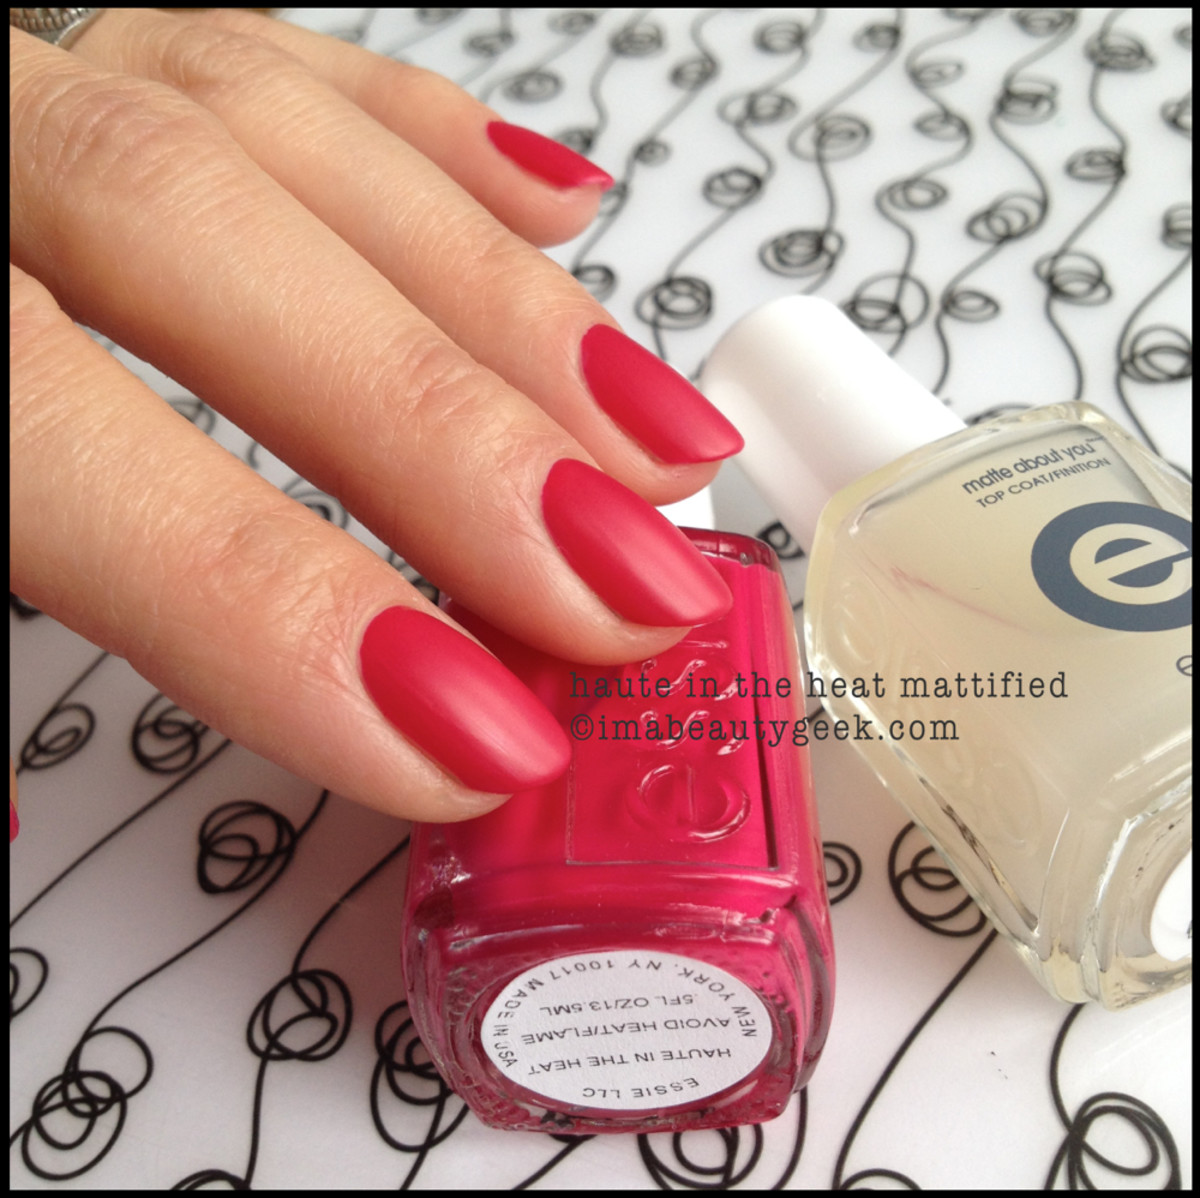 Essie Haute in the Heat matte top coat Essie summer 2014